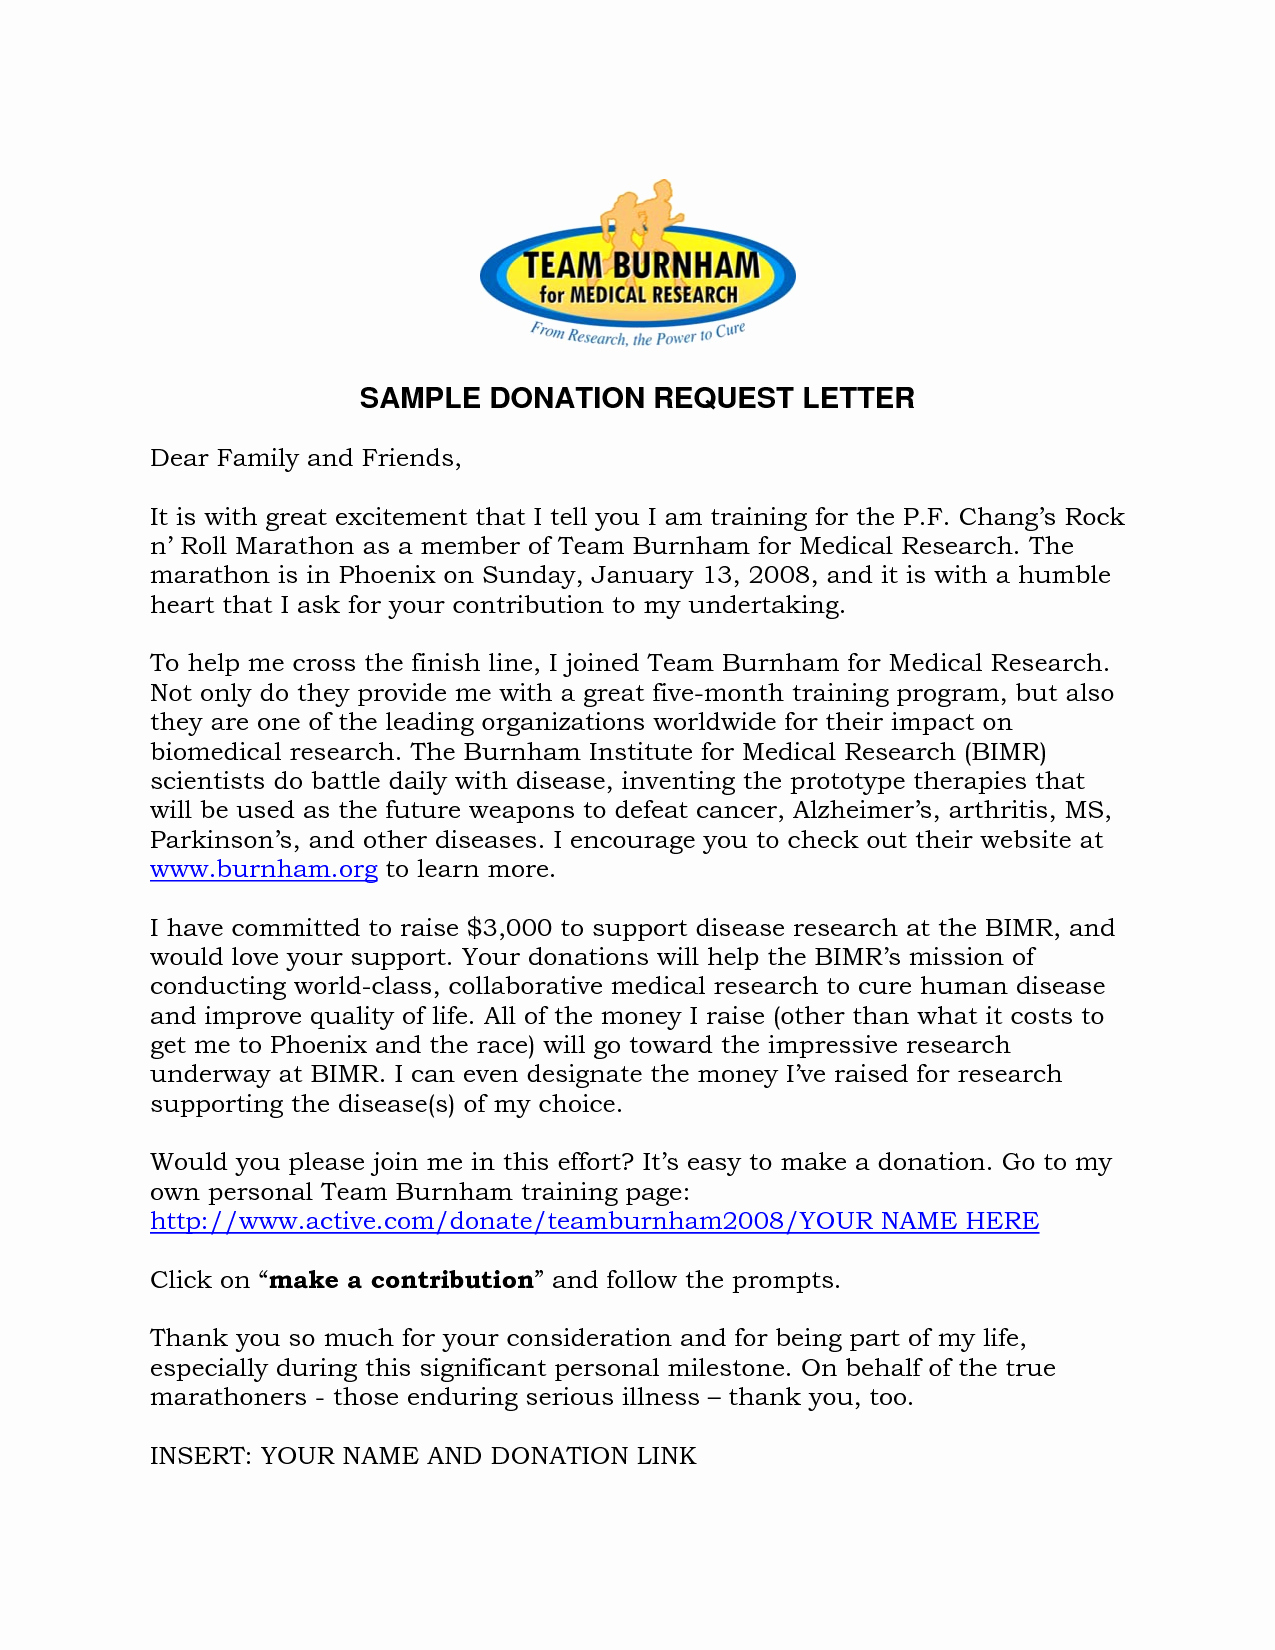 Sample Letters asking for Donations New Sample Donation Request Letter Template